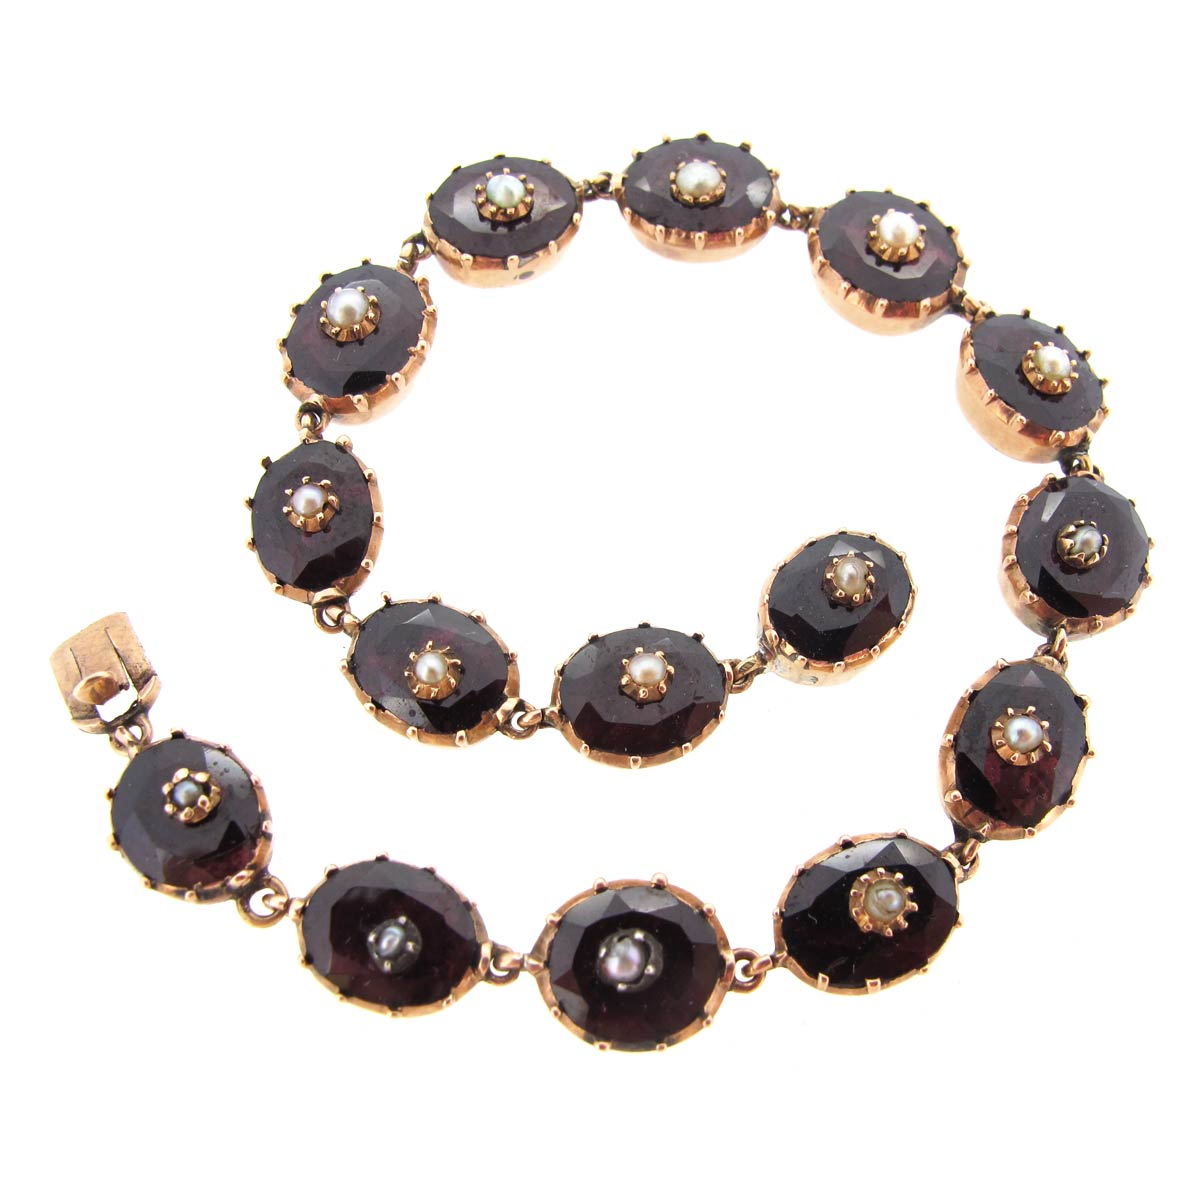 Antique Garnet & Pearl Bracelet